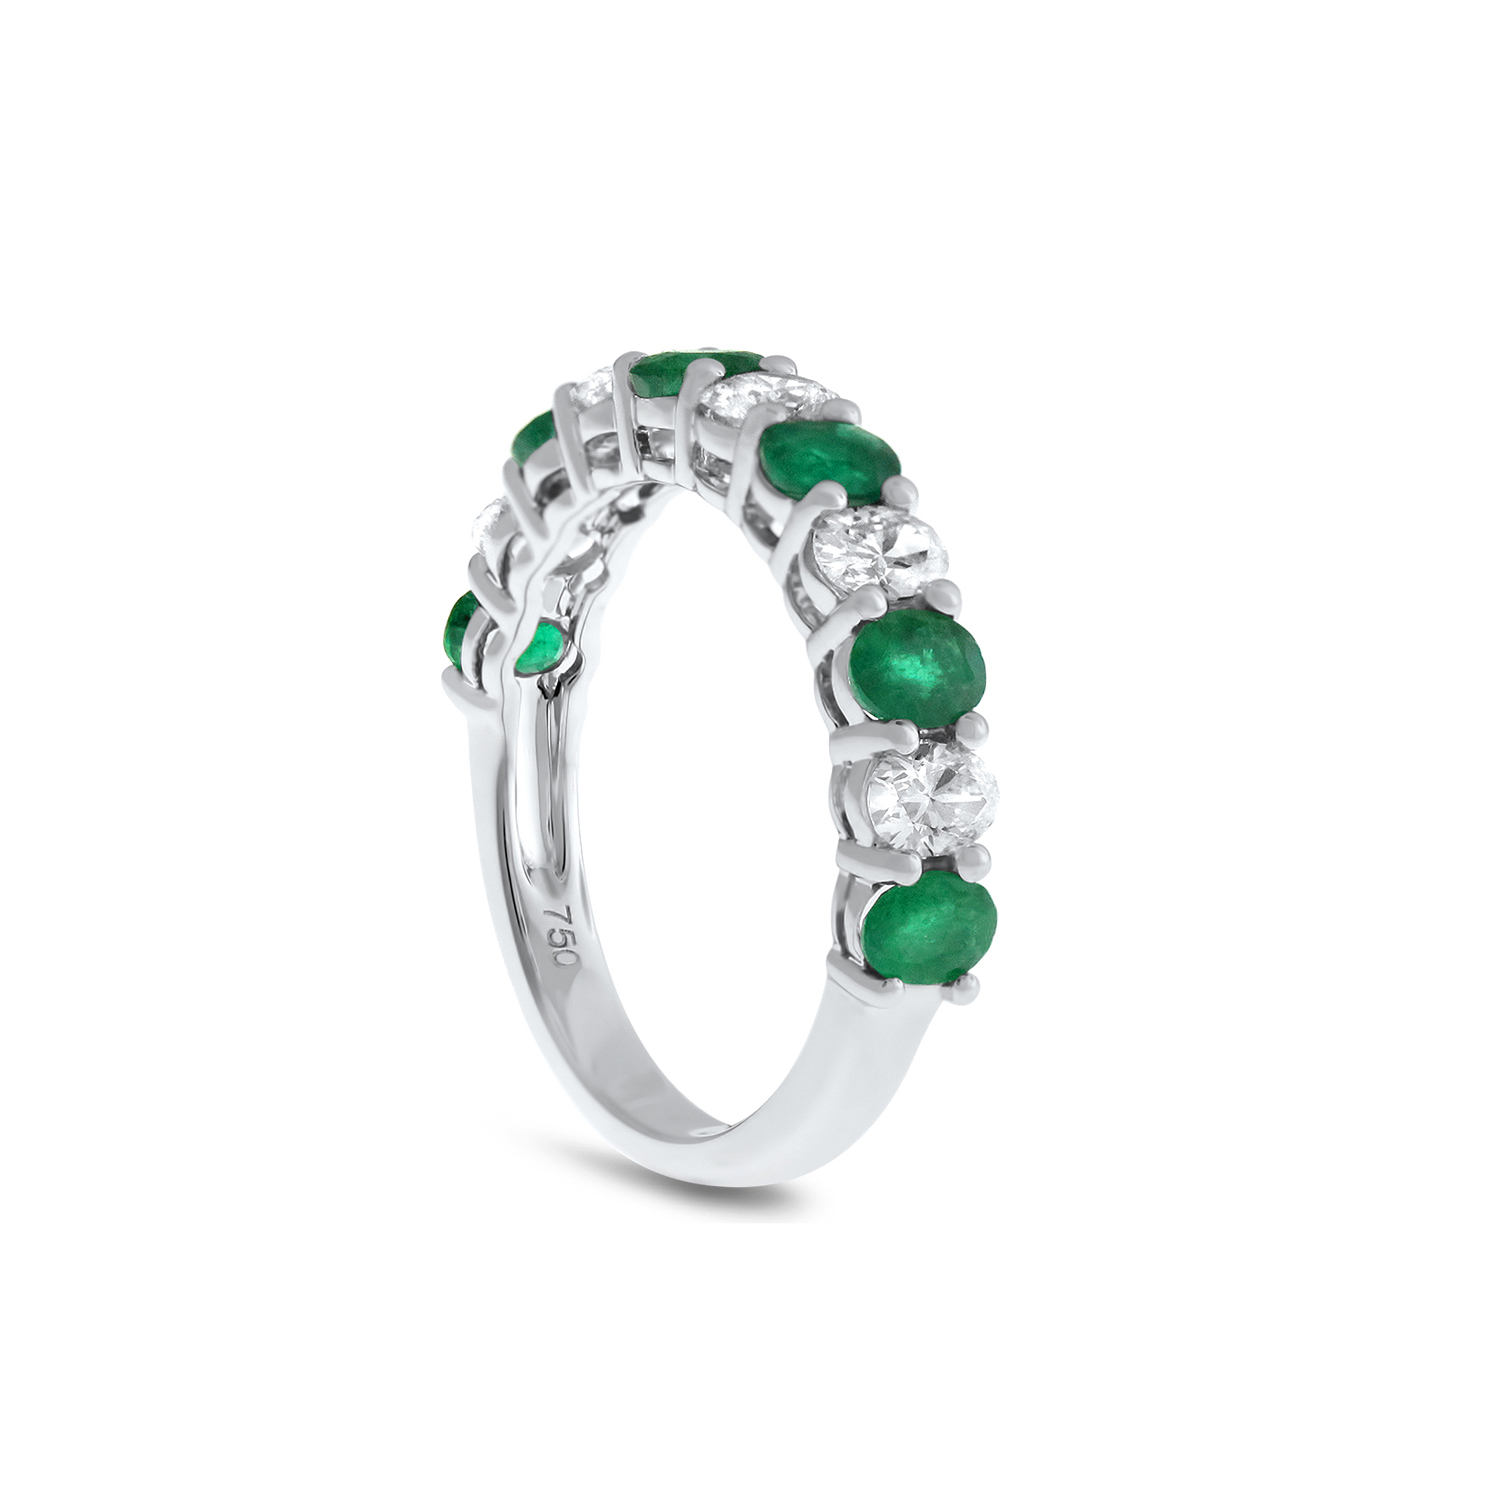 band diamond cut emerald bands eternity concierge ring with attachment of engagement rings new carat